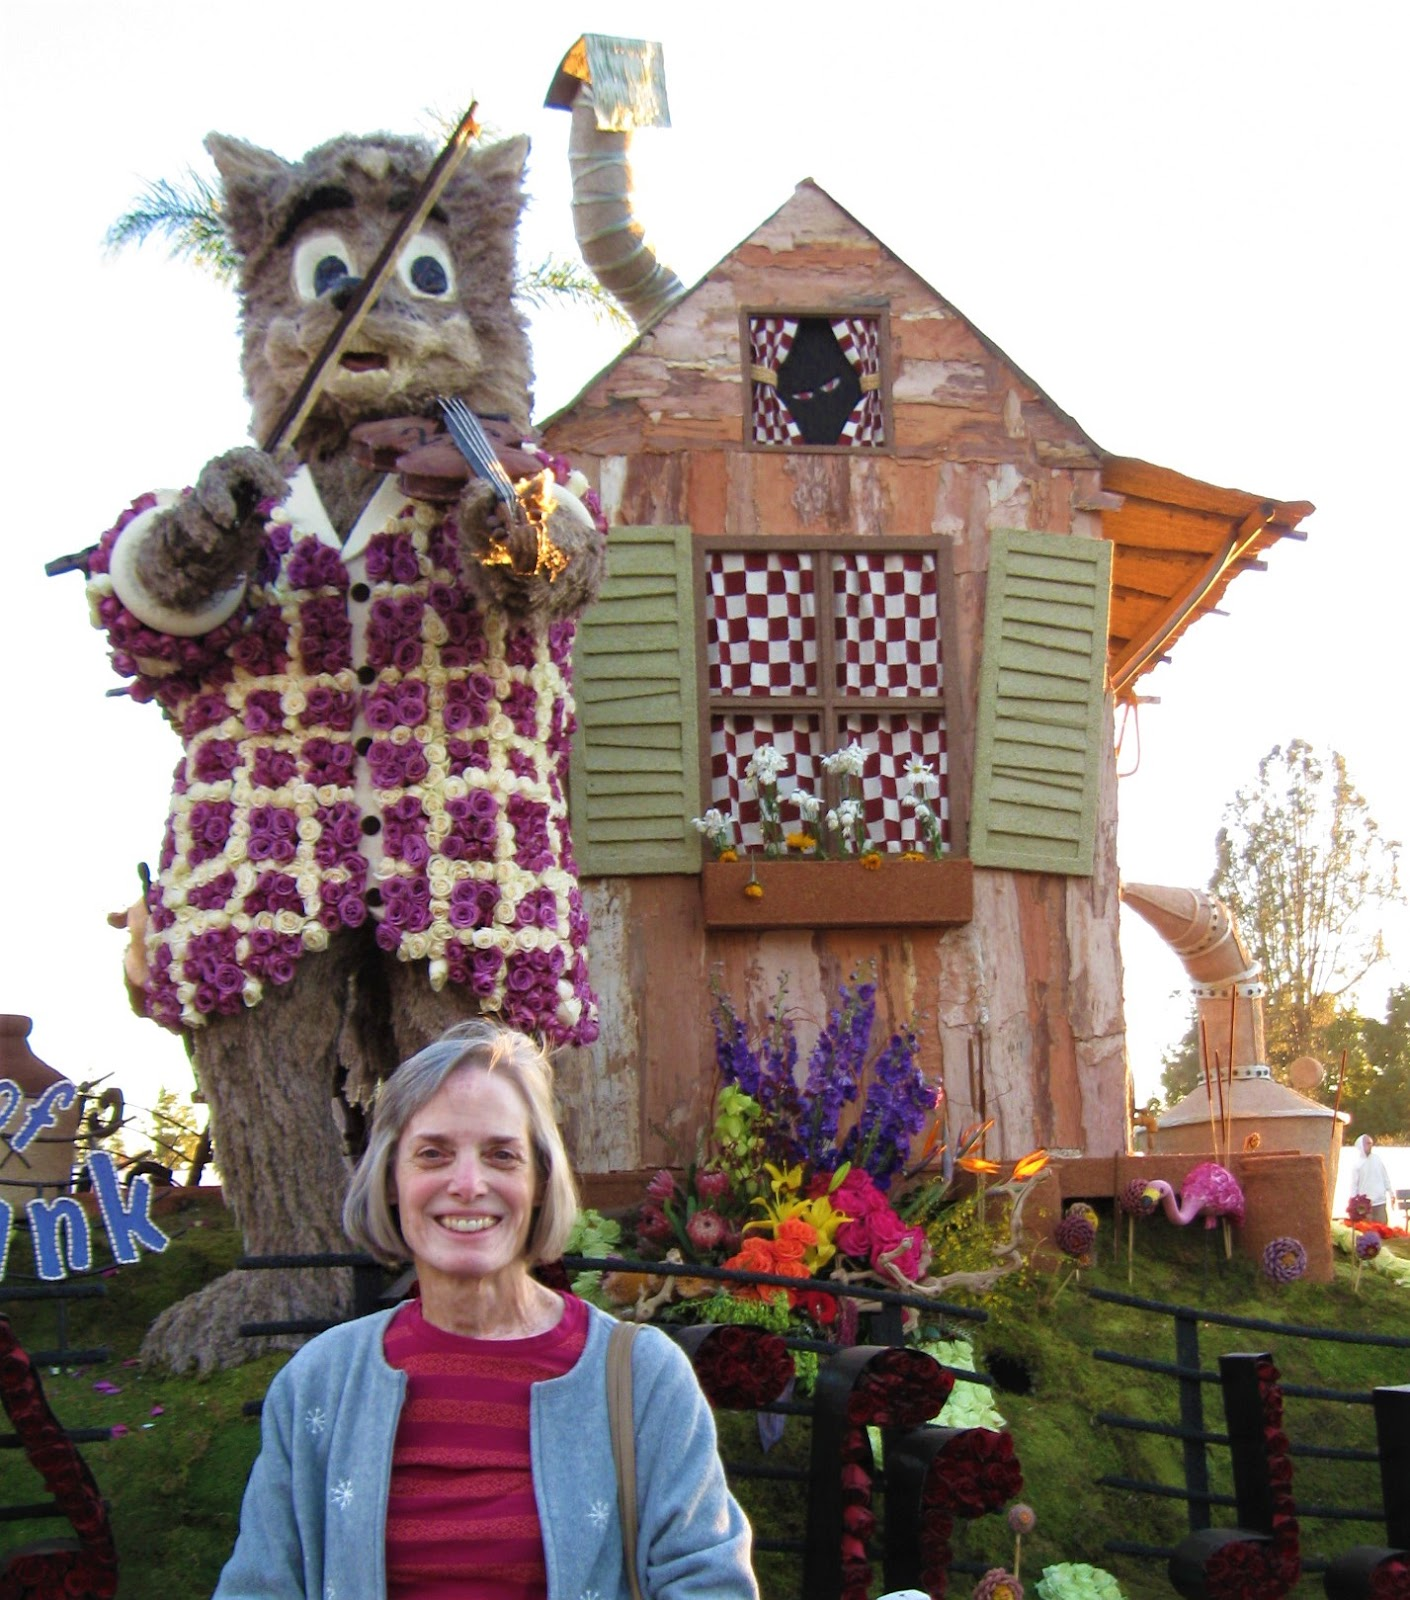 TOCTooler Beira Winter standing smiling in front of the Rose Bowl Parade float she helped with this year.  The float features a funky-looking house with crooked shutters, and a large cat in front playing the fiddle